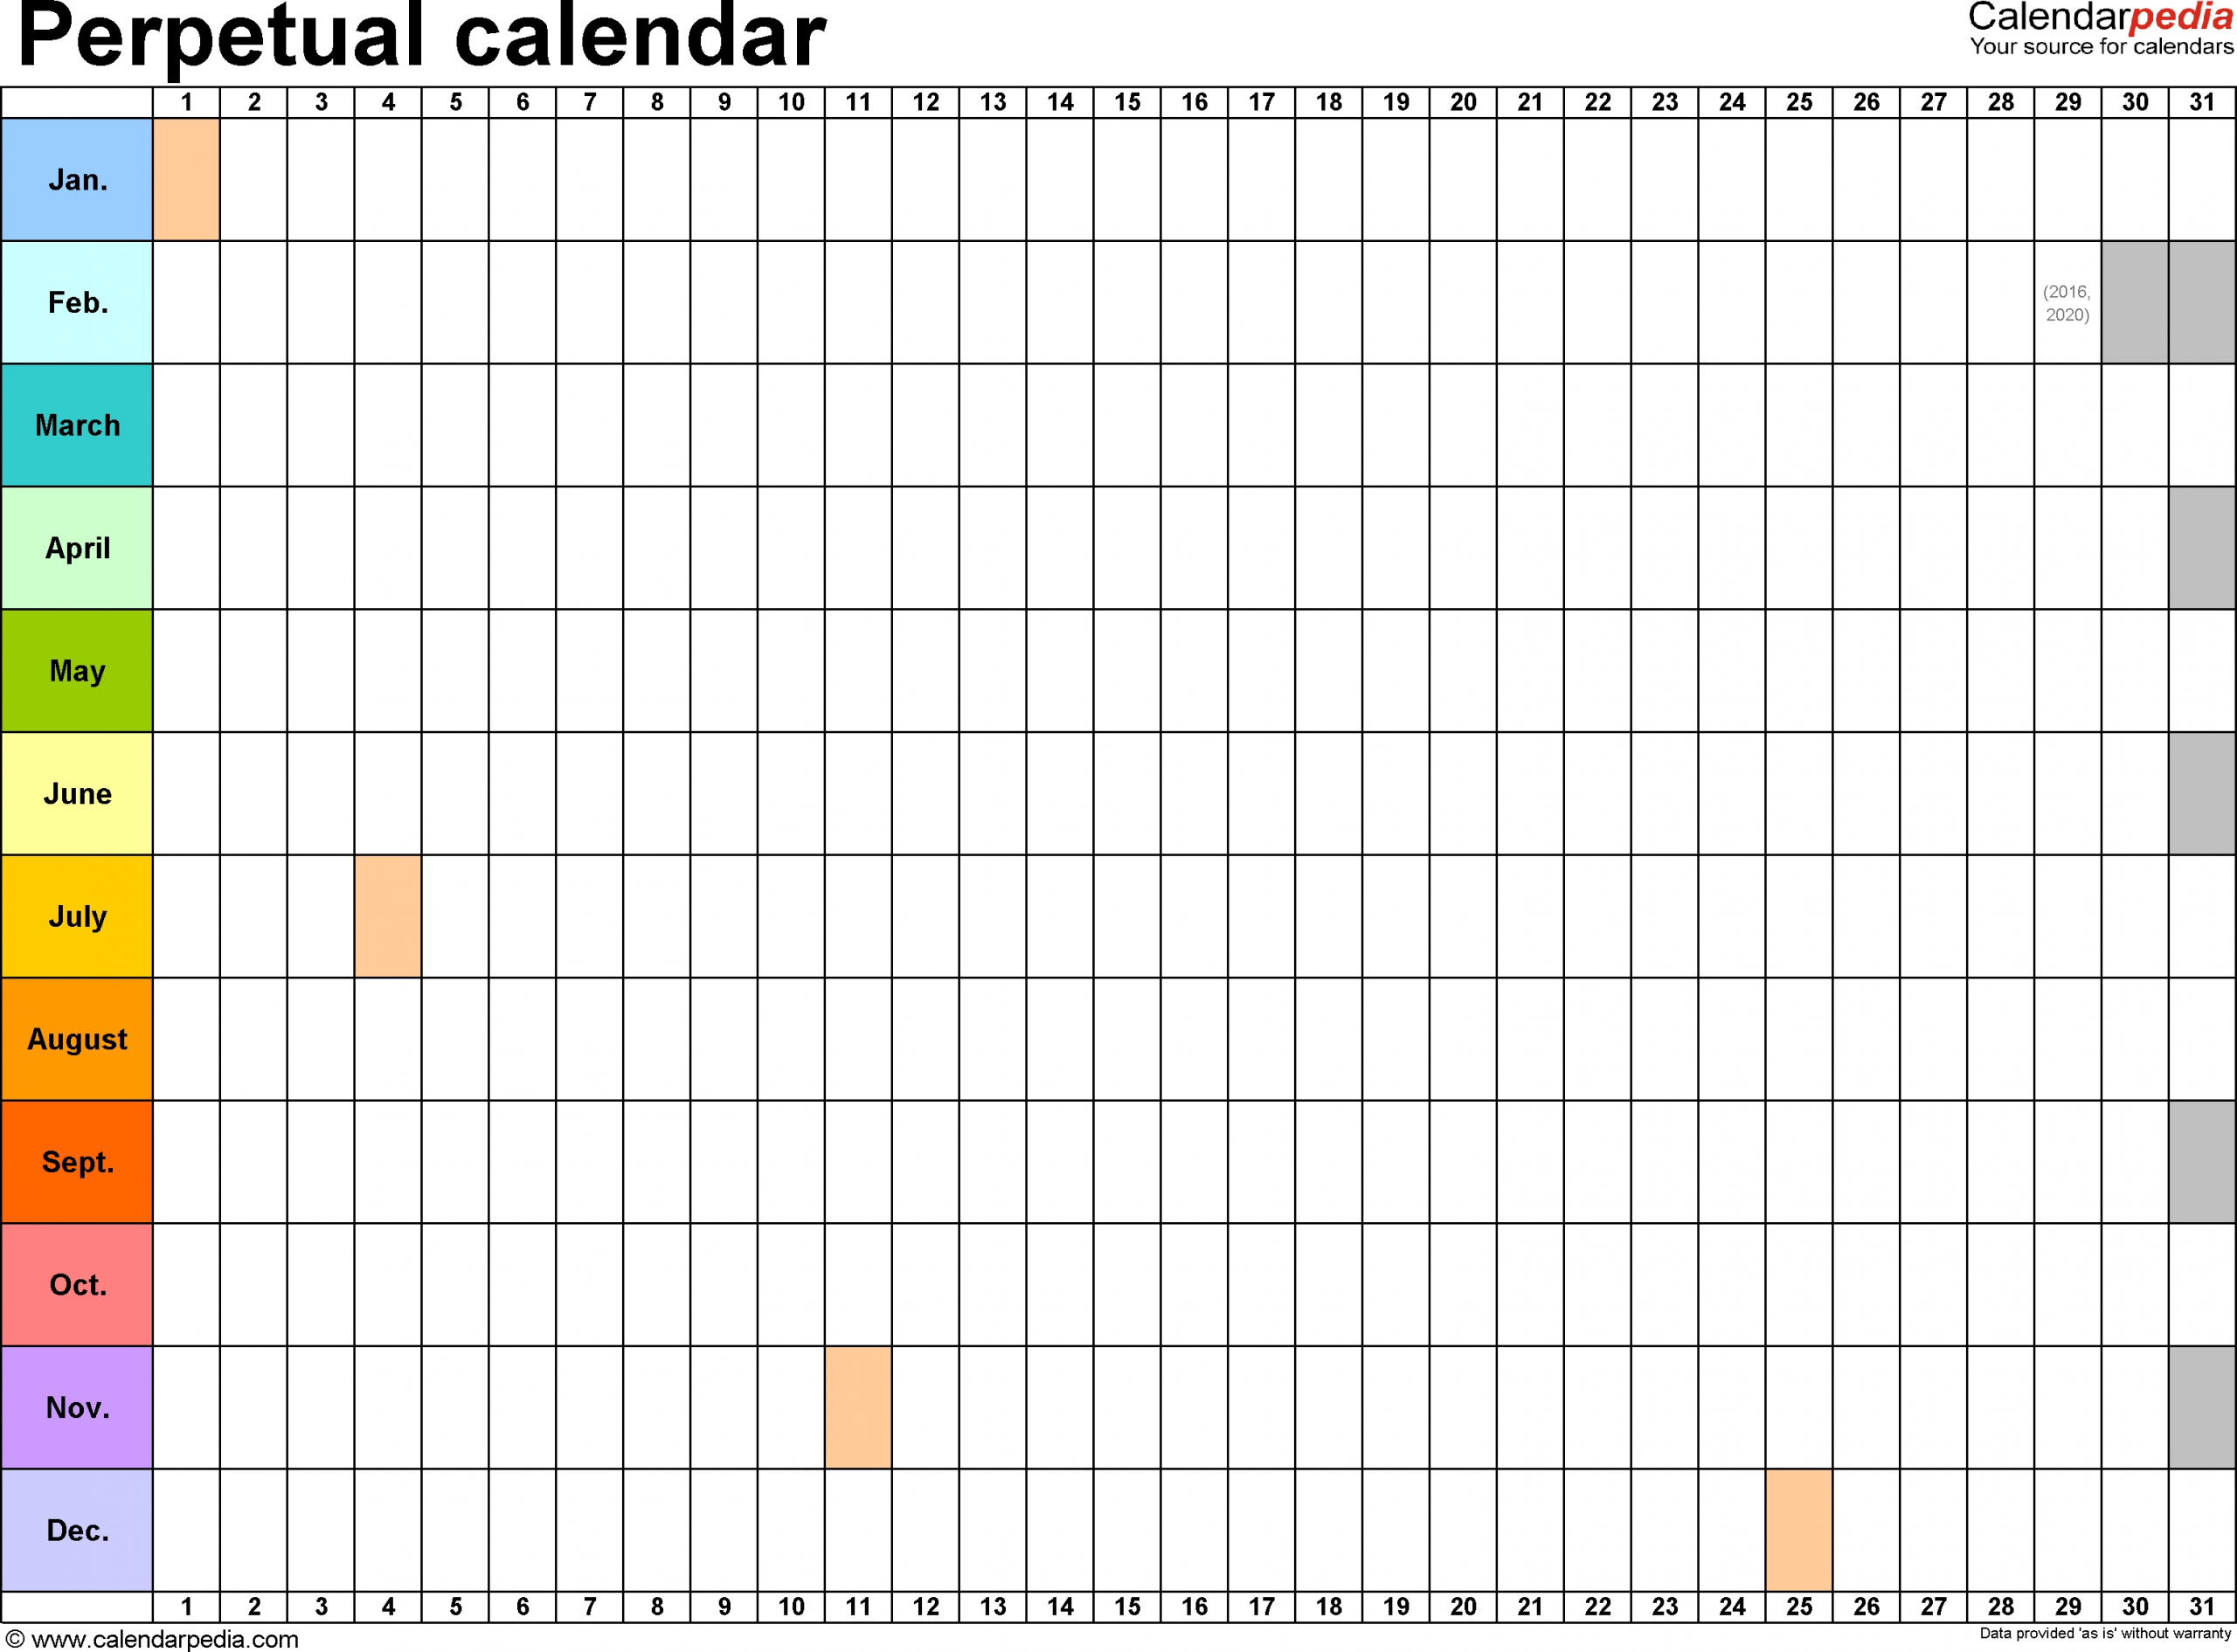 Perpetual Calendars - 7 Free Printable Excel Templates intended for Printable Template For Perpetual Calendar